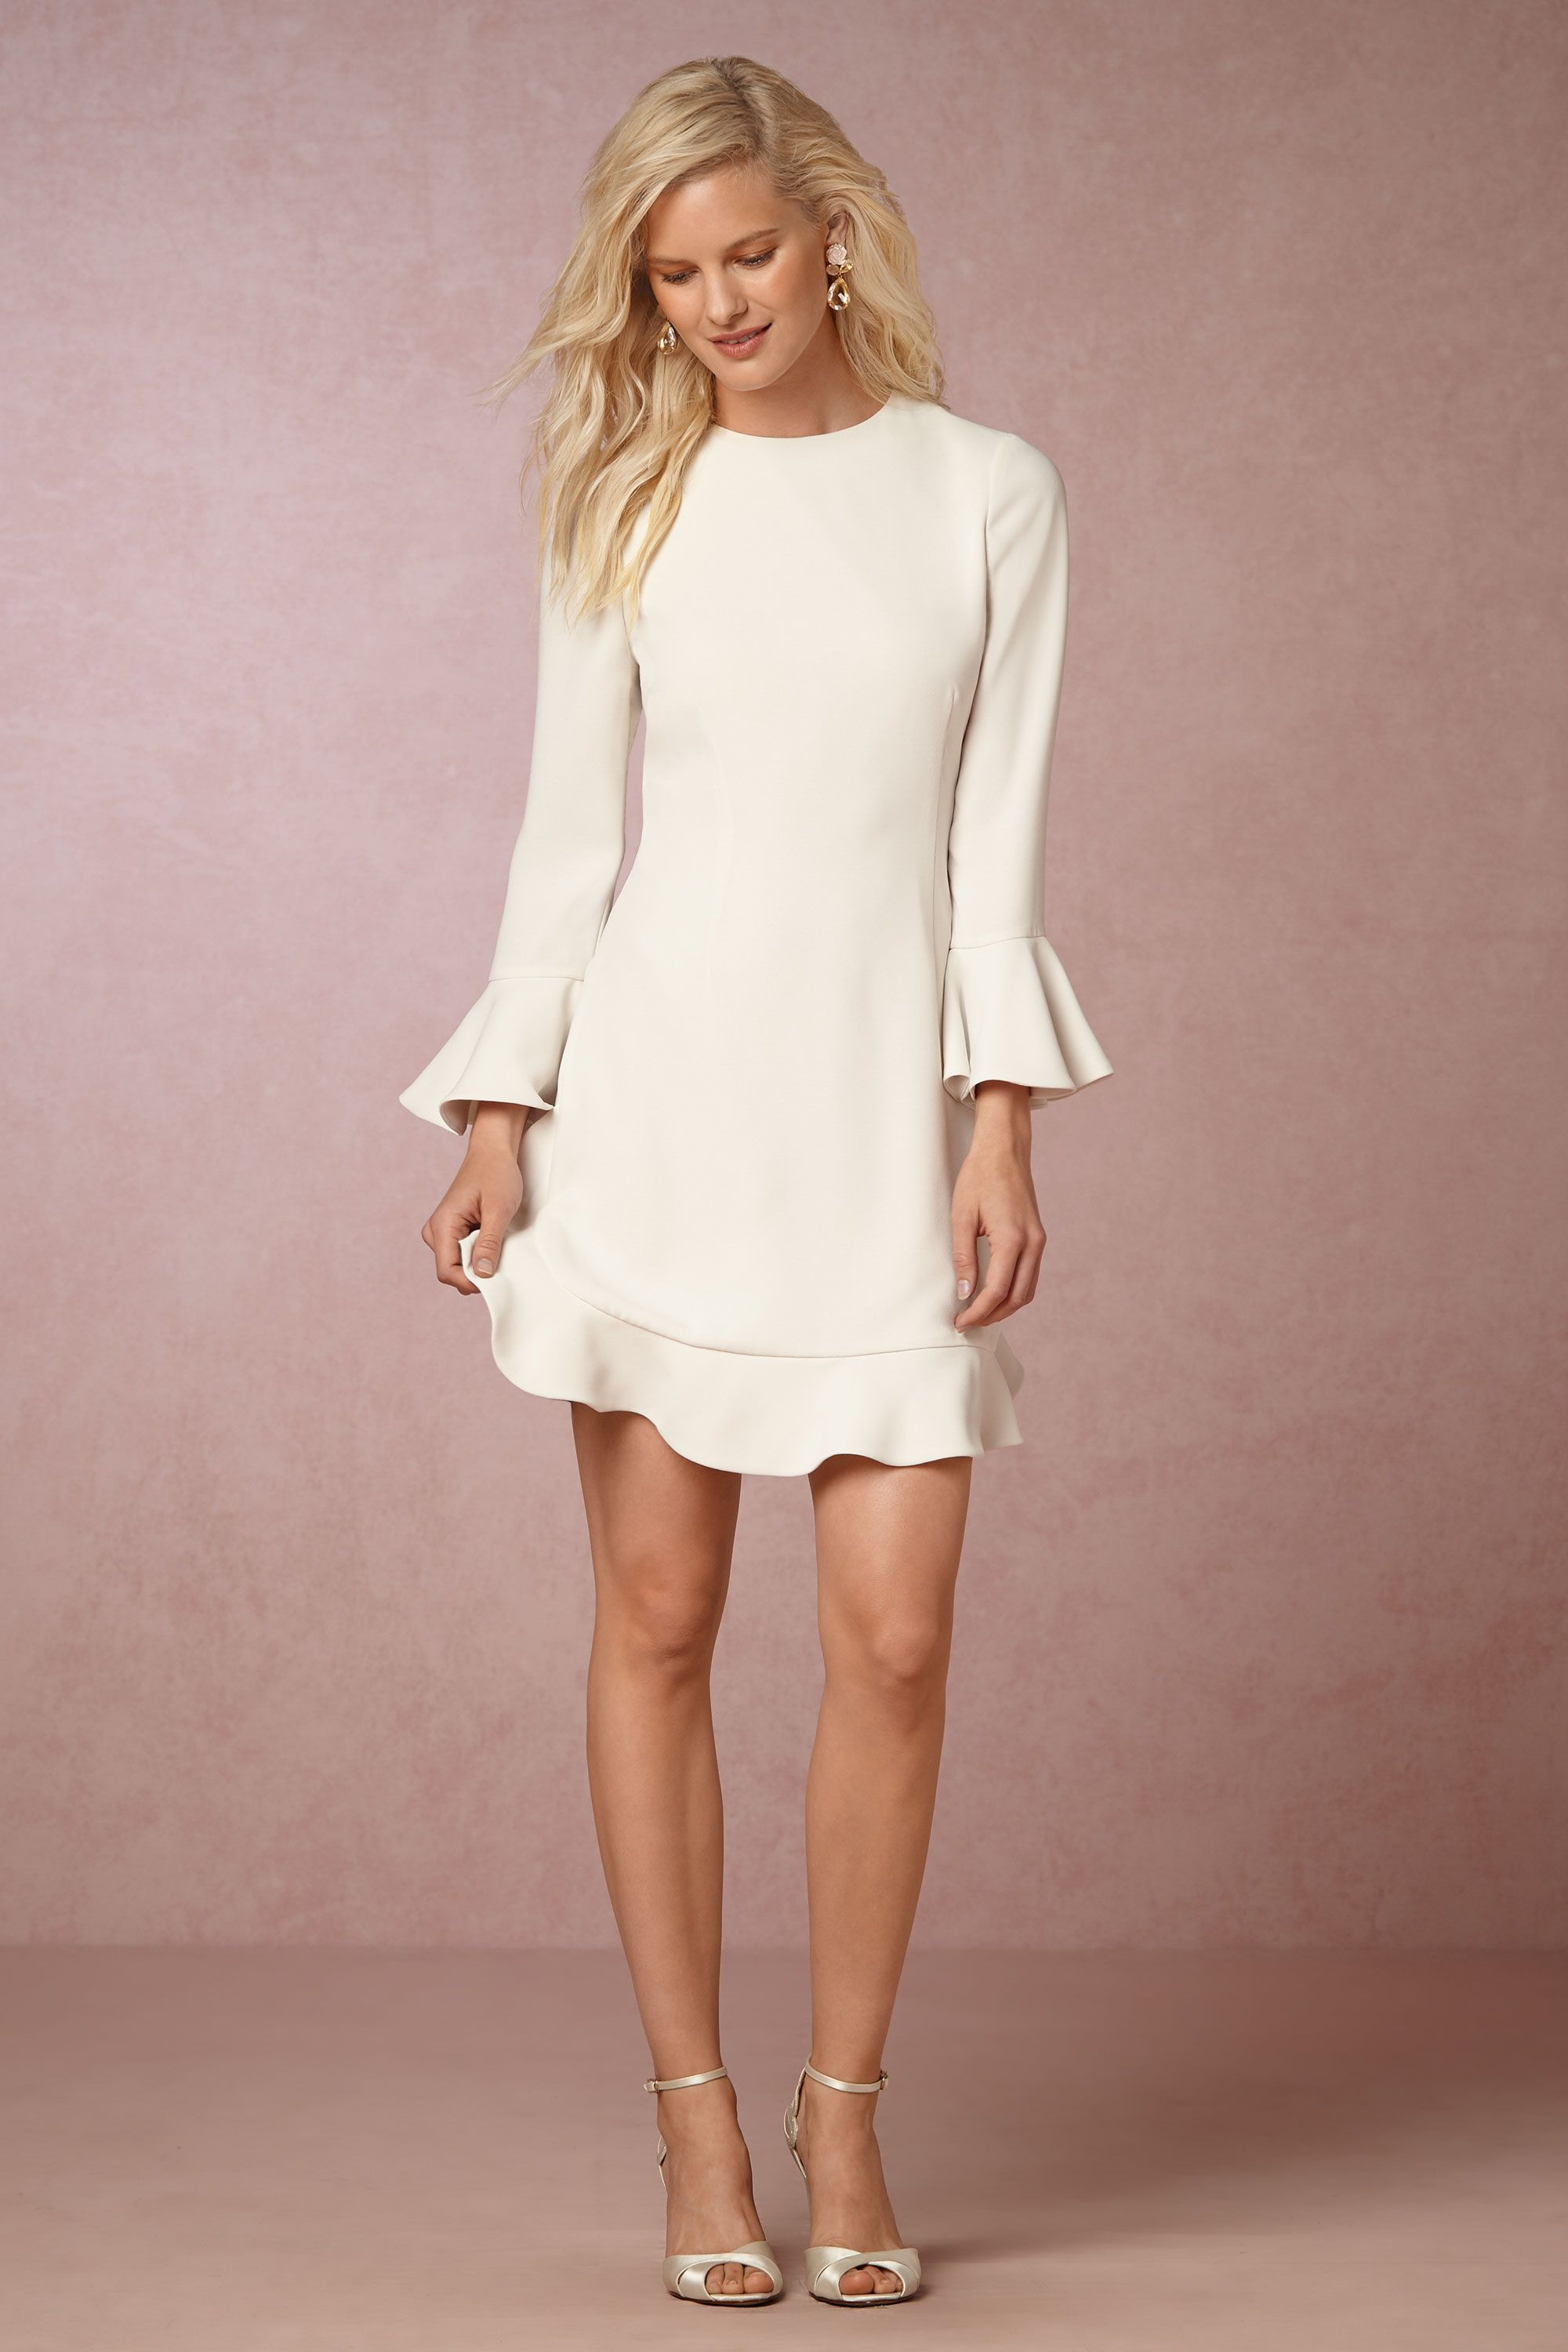 Jenny dress from bhldn what i am going to be like pinterest